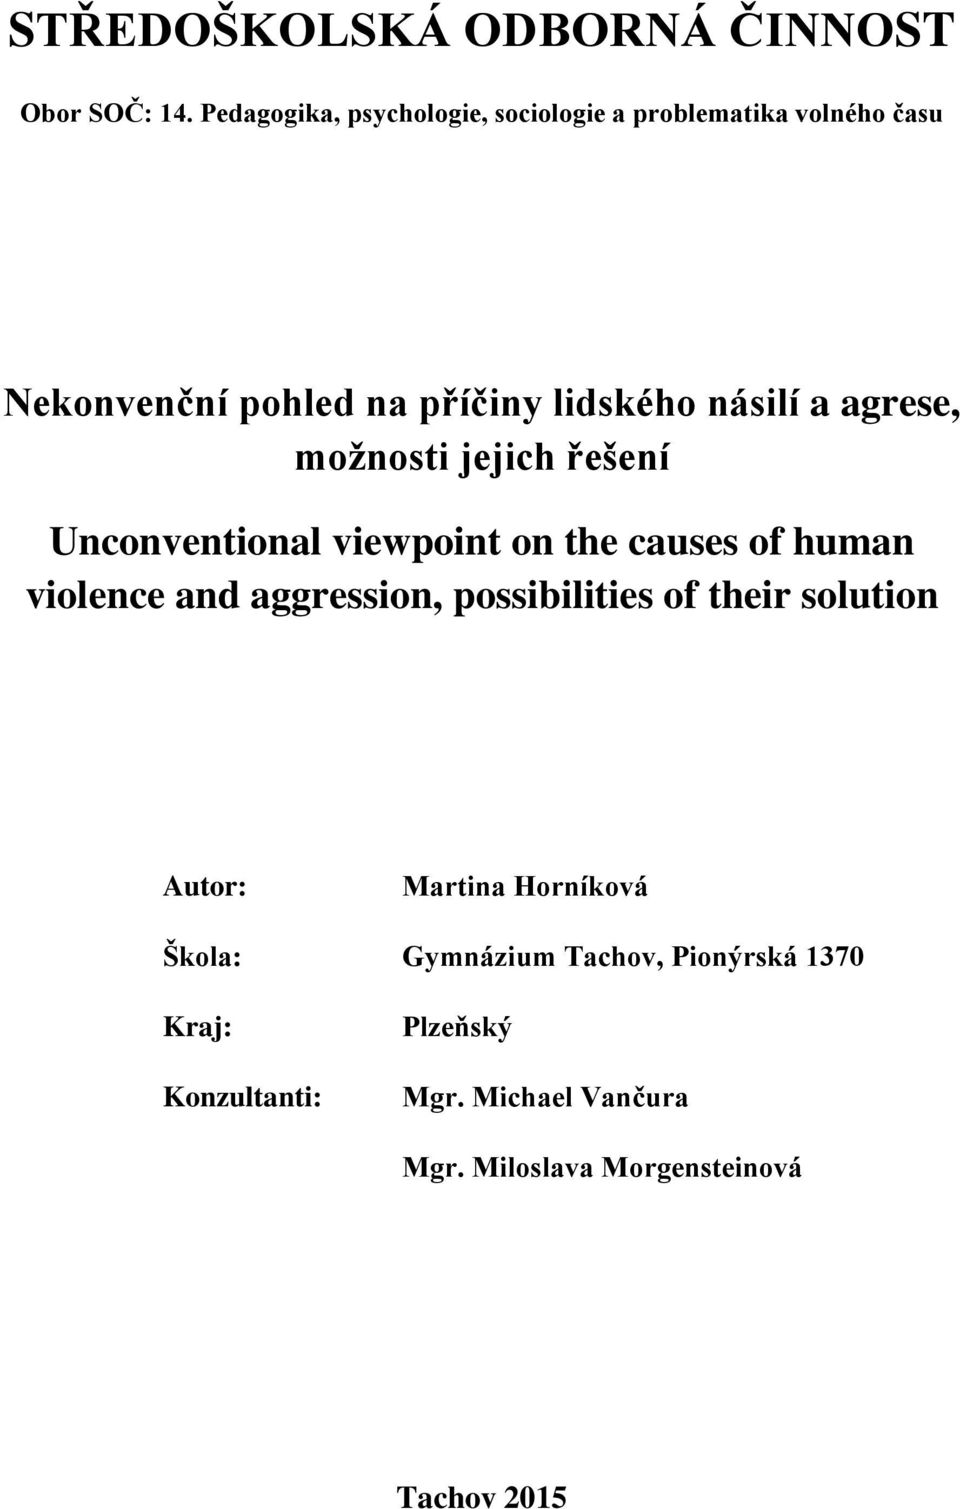 agrese, možnosti jejich řešení Unconventional viewpoint on the causes of human violence and aggression,